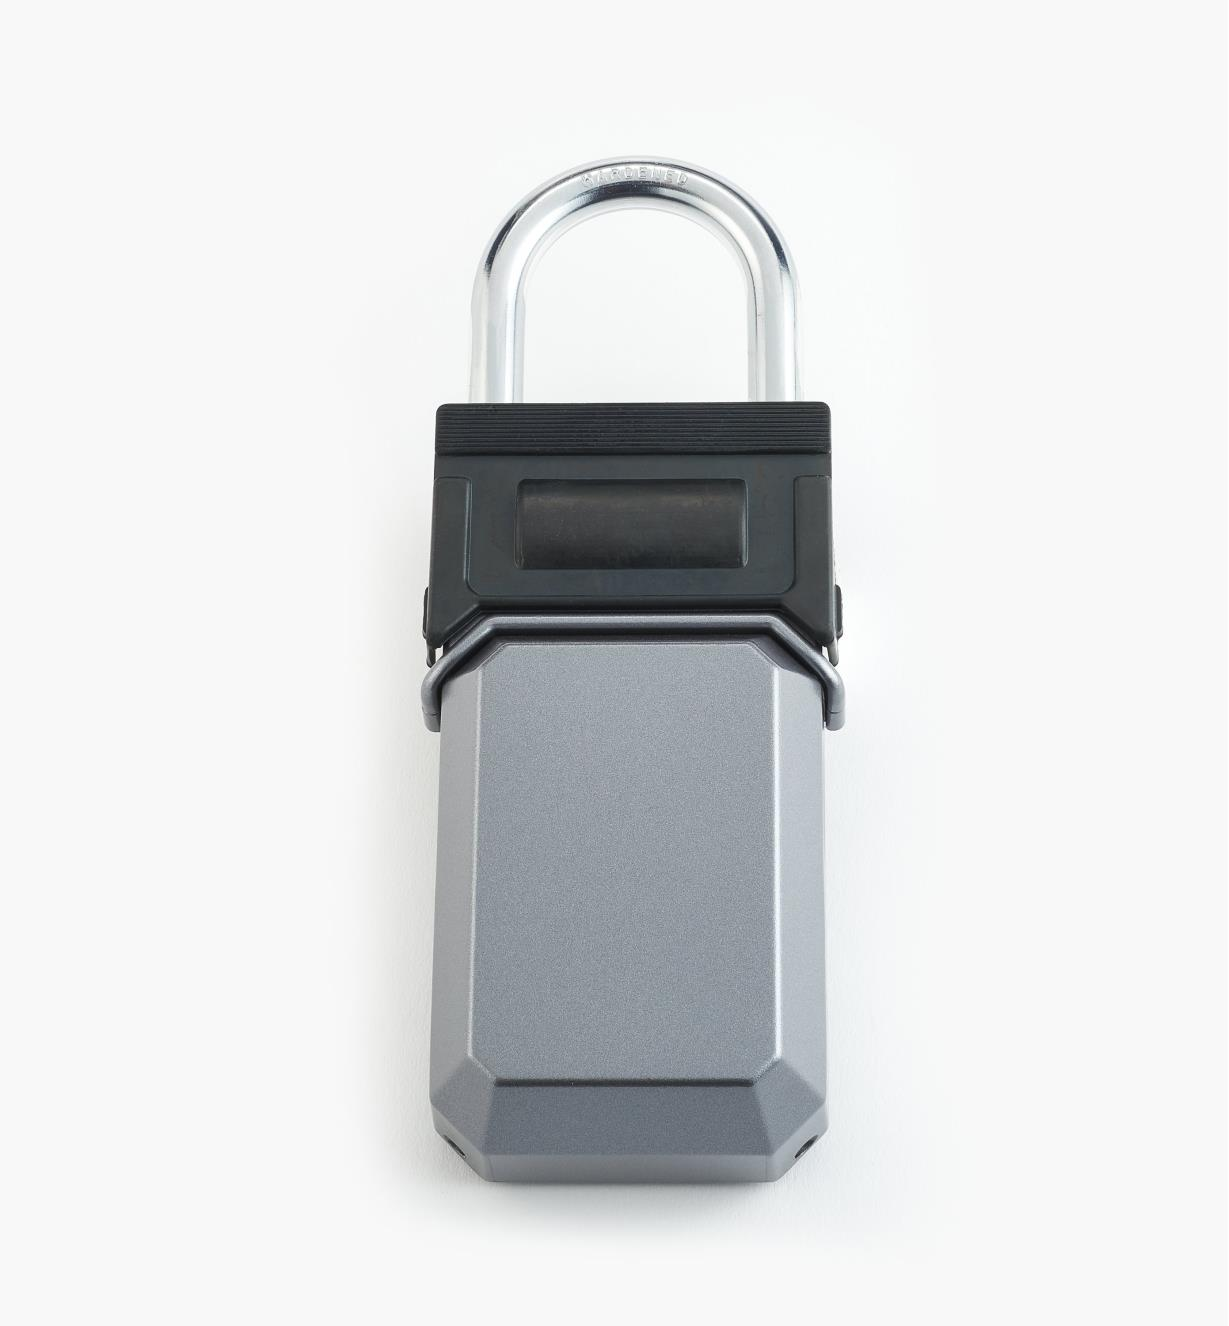 00F3901 - Lockbox with Shackle